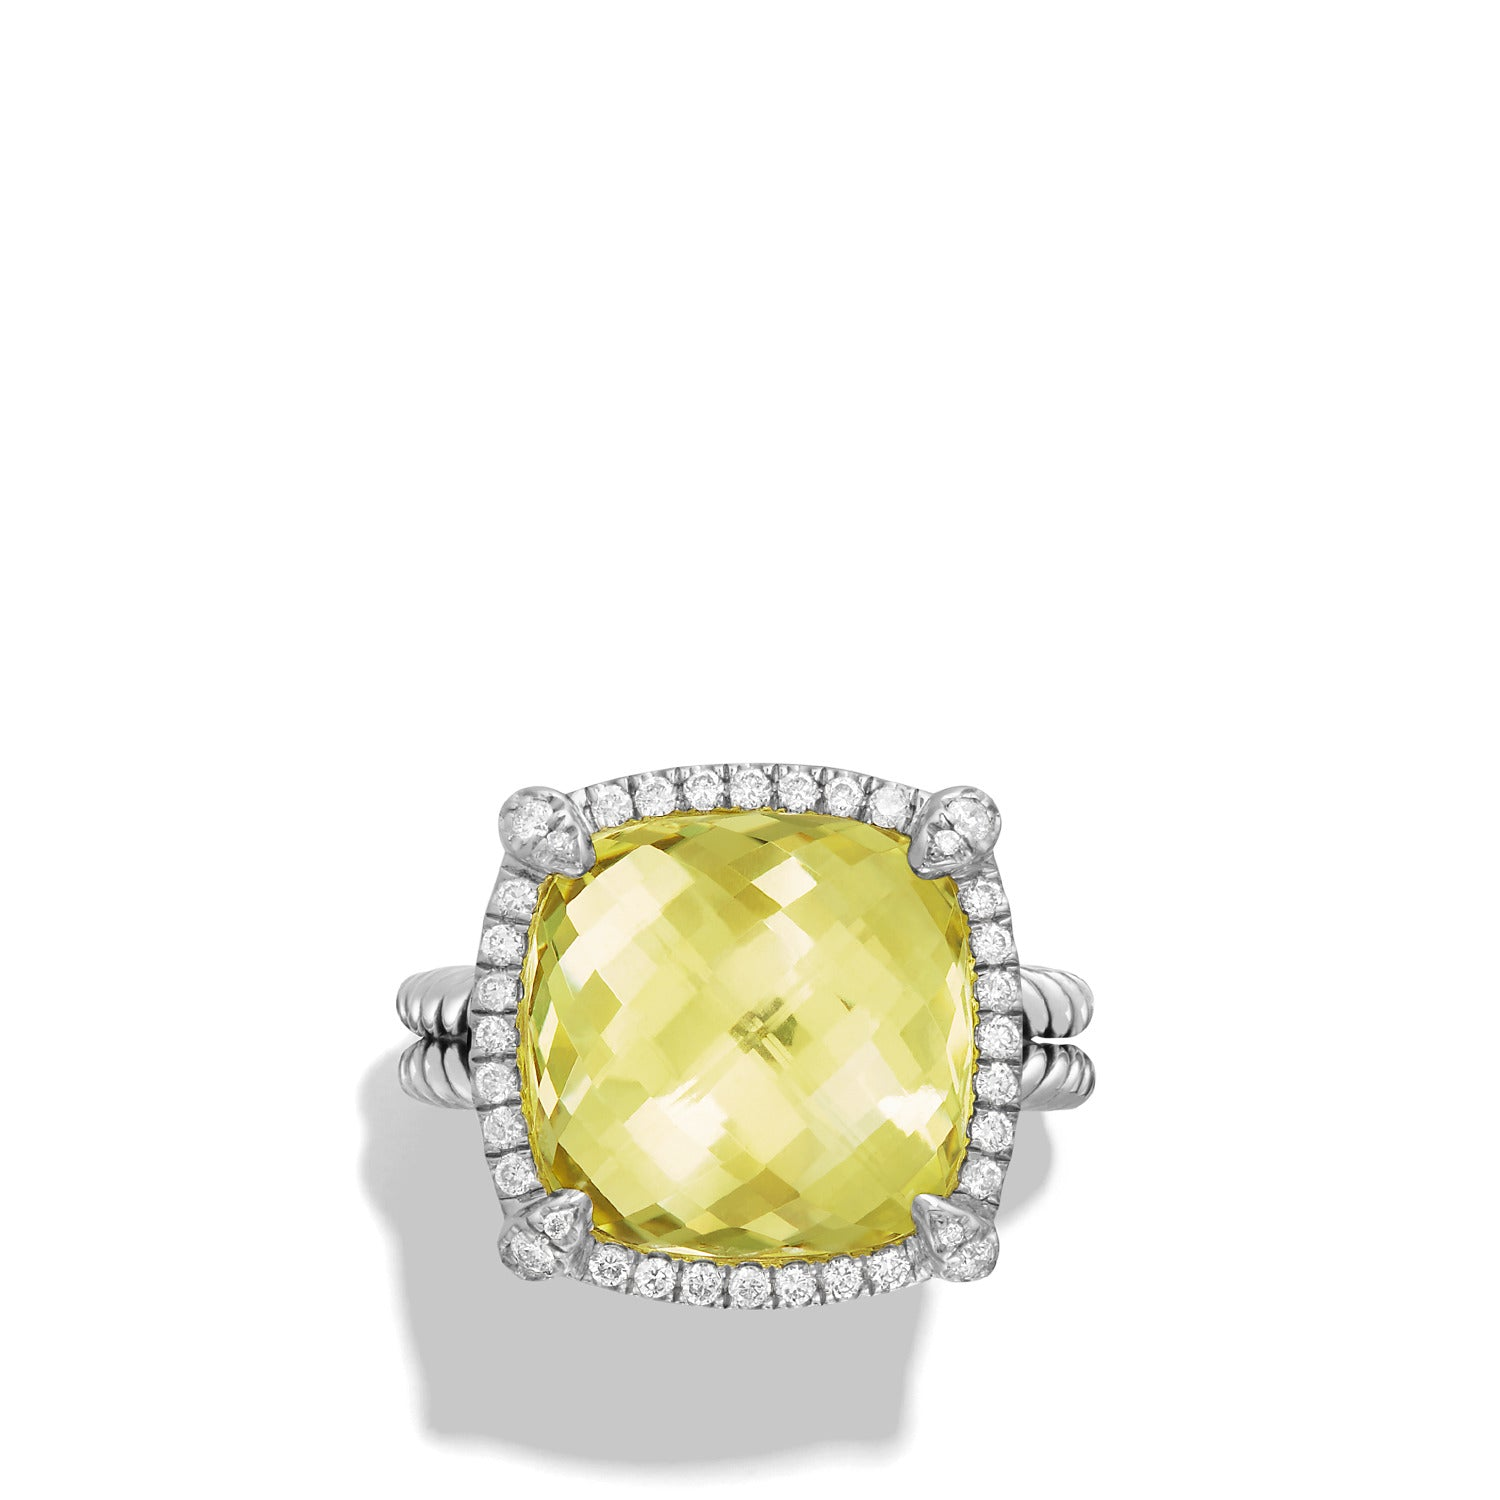 Chatelaine Pave Bezel Ring with Lemon Citrine and Diamonds, 14mm